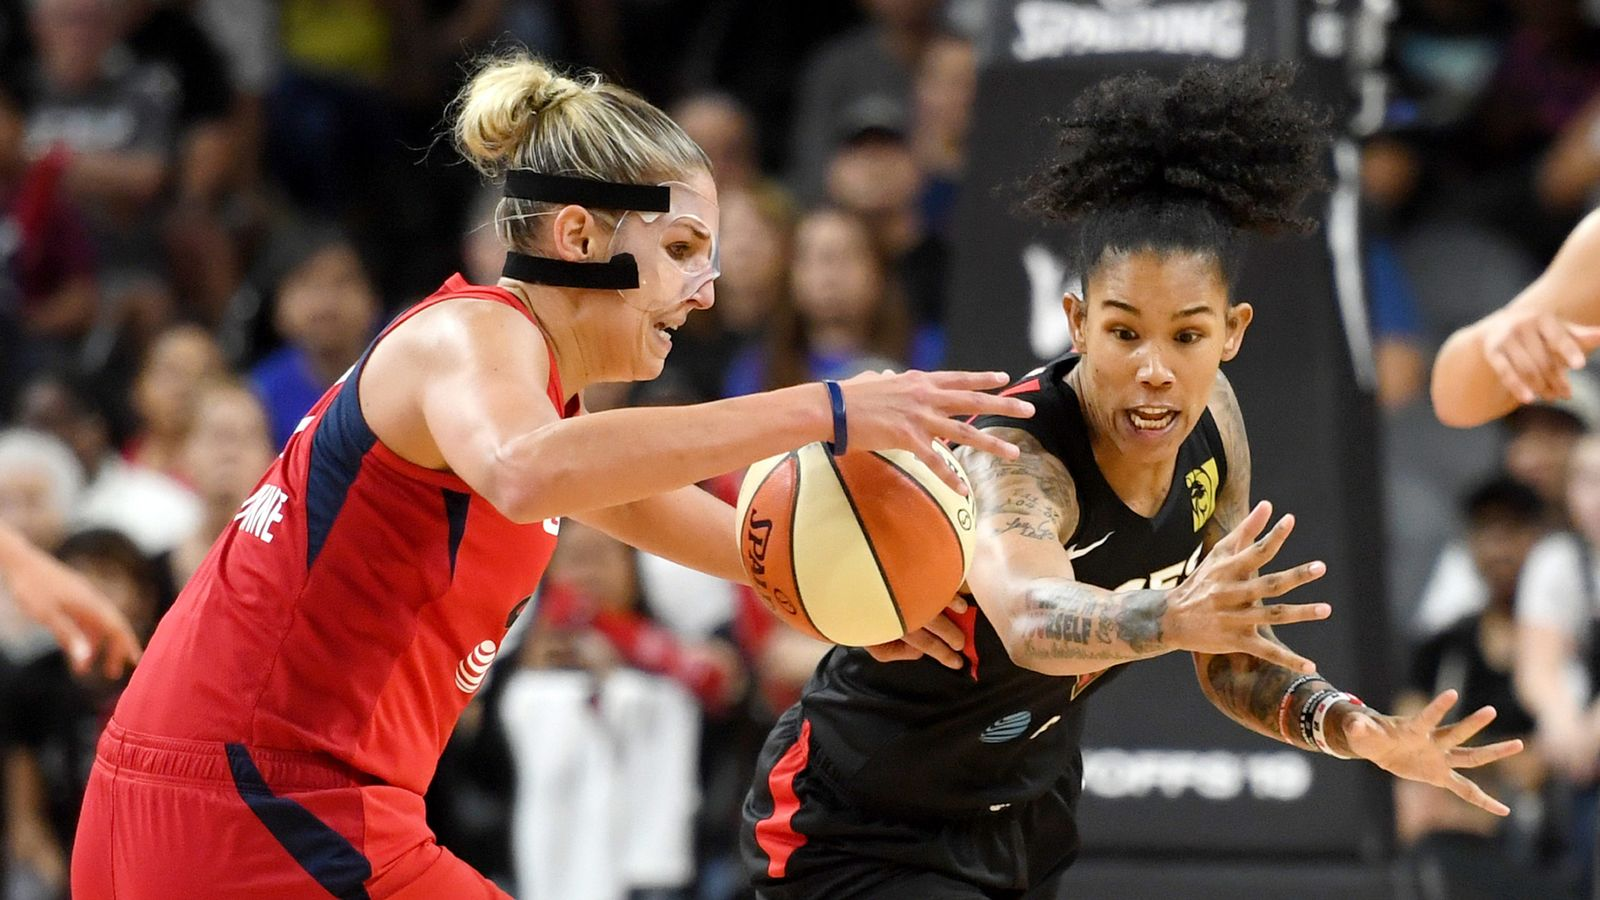 WNBA postpones start of regular season due to COVID-19